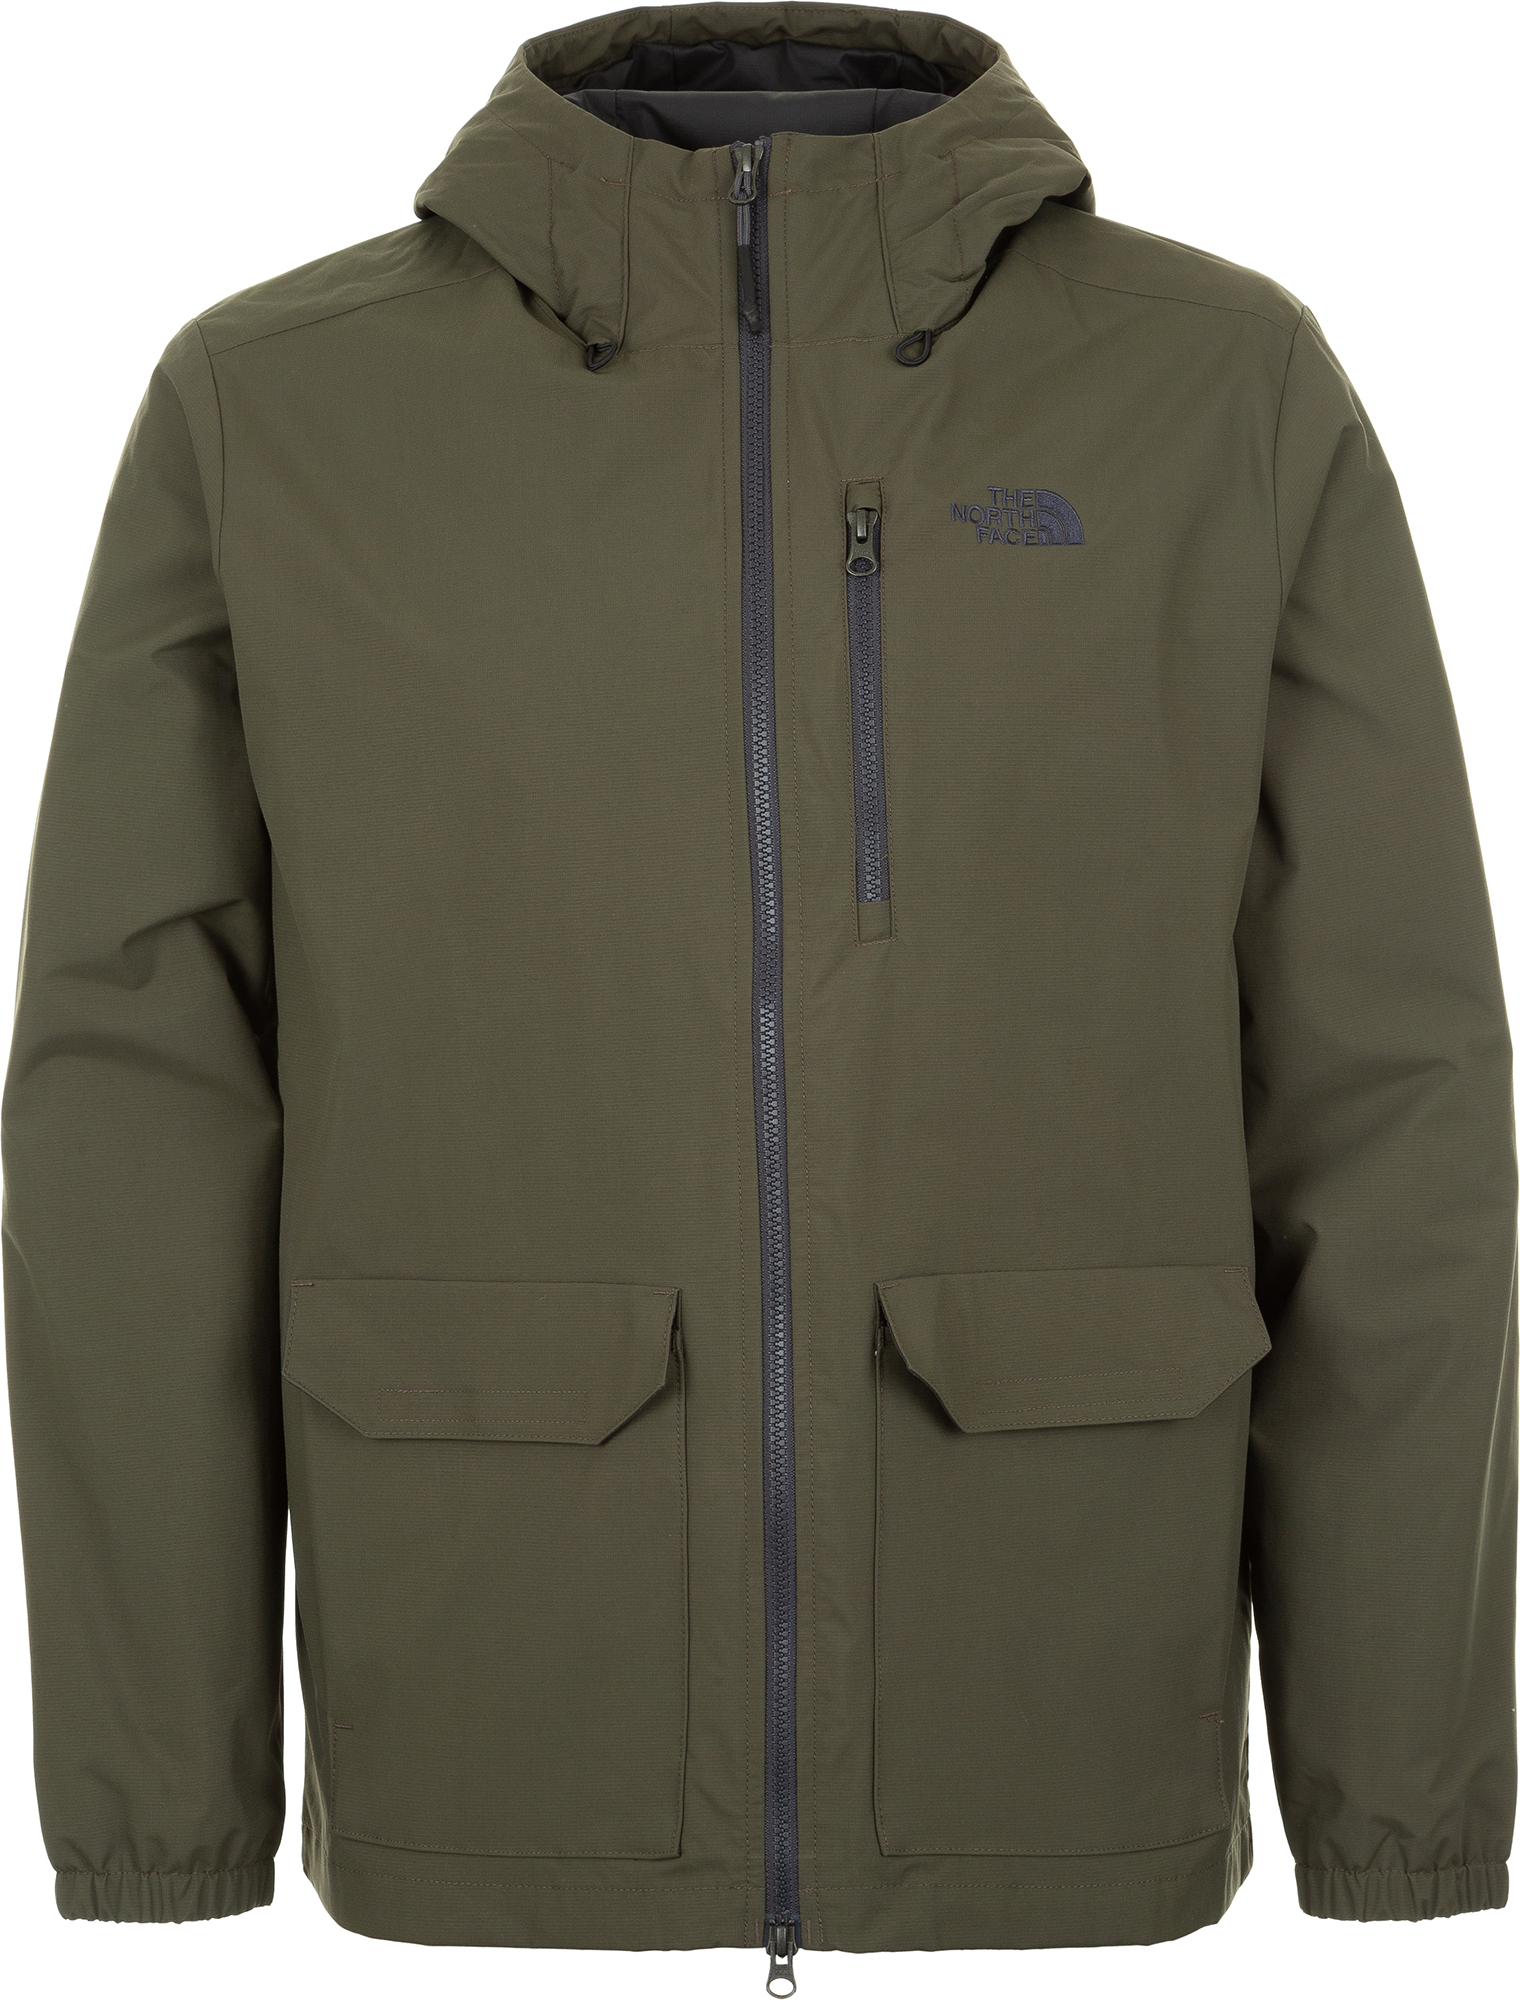 The North Face Ветровка мужская The North Face Jackstraw, размер 48 цена